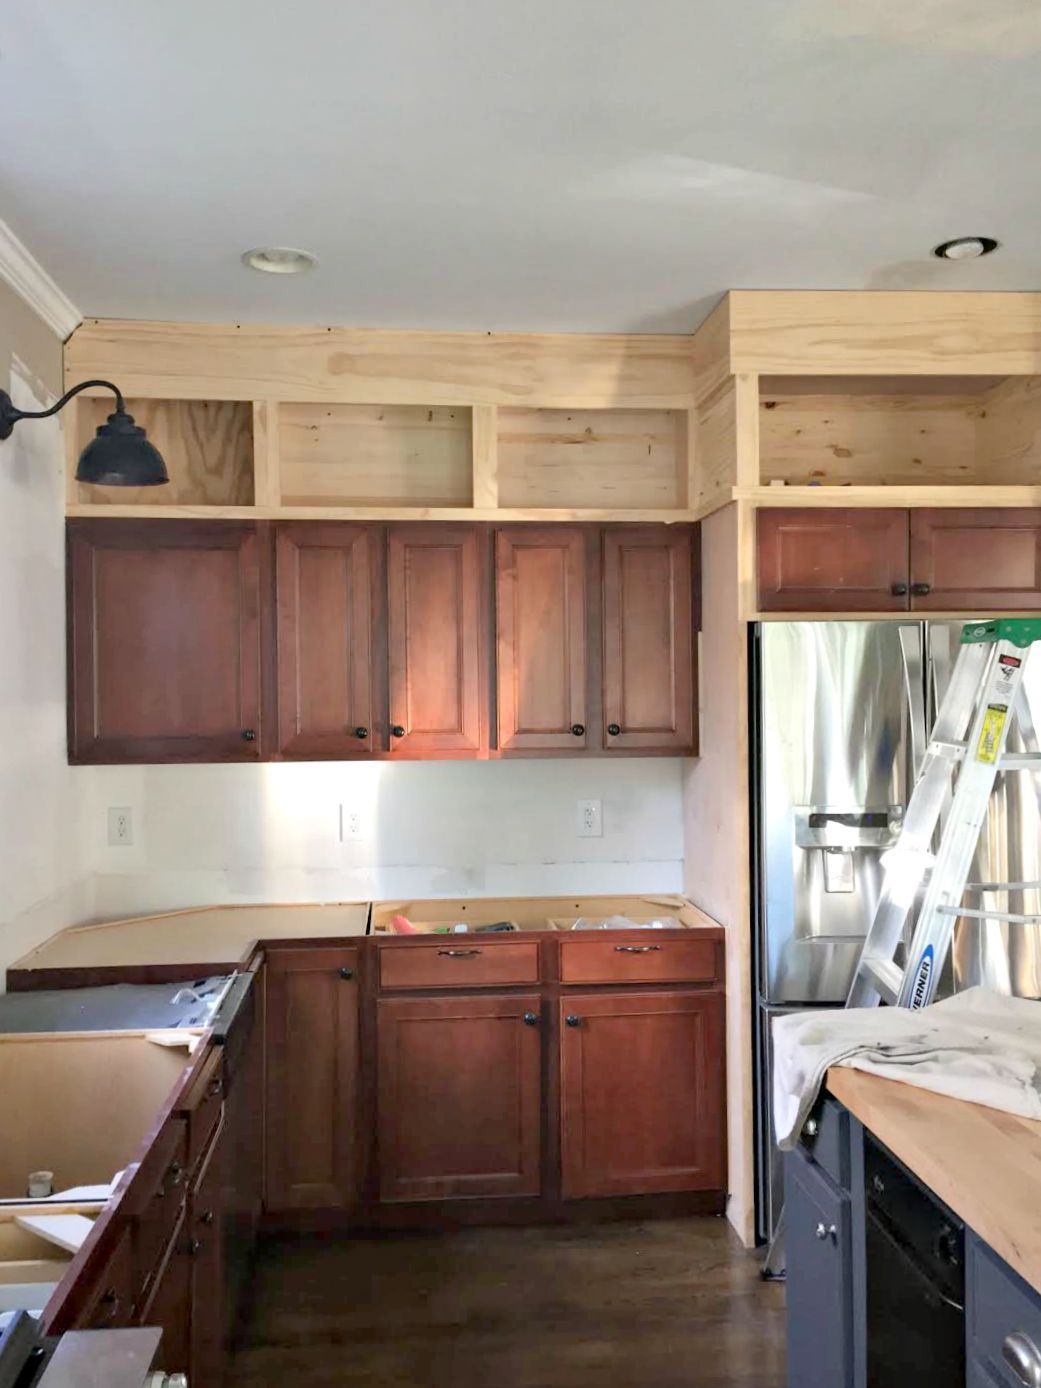 Kitchen Cabinets To The Ceiling Classy Building Cabinets Up To The Ceiling  Building Kitchen Cabinets . Design Inspiration